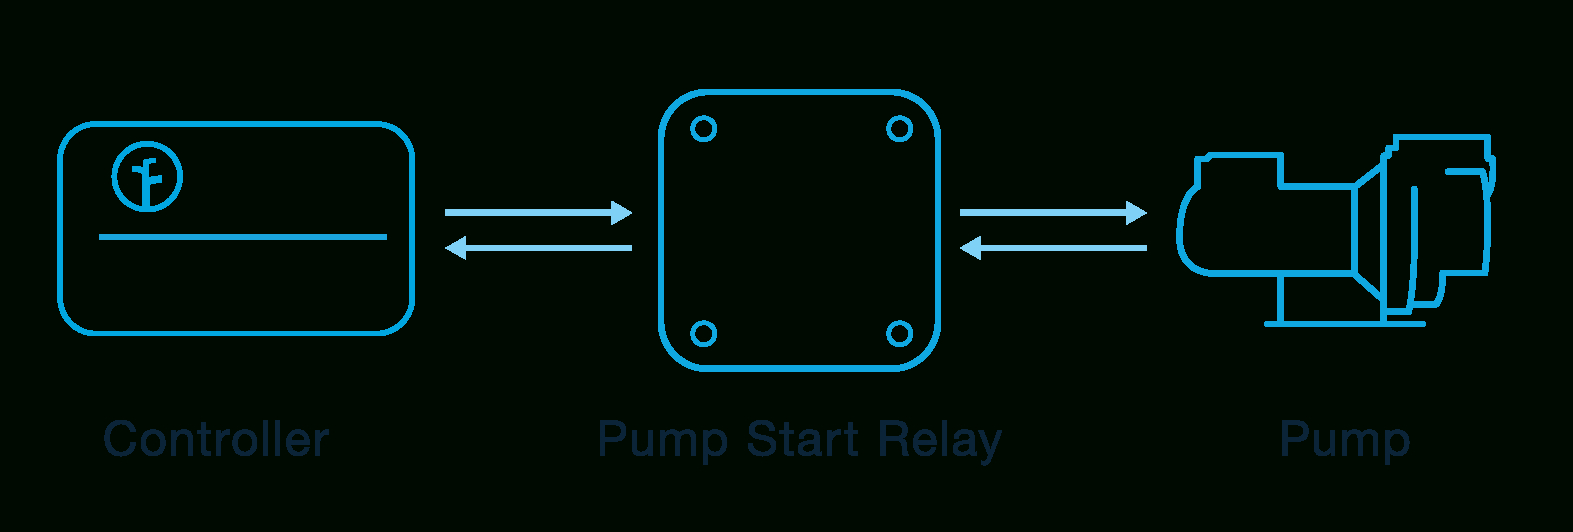 pump start relay wiring diagram wirings diagram how to wire your controller basic and advanced wiring rachio support pump start